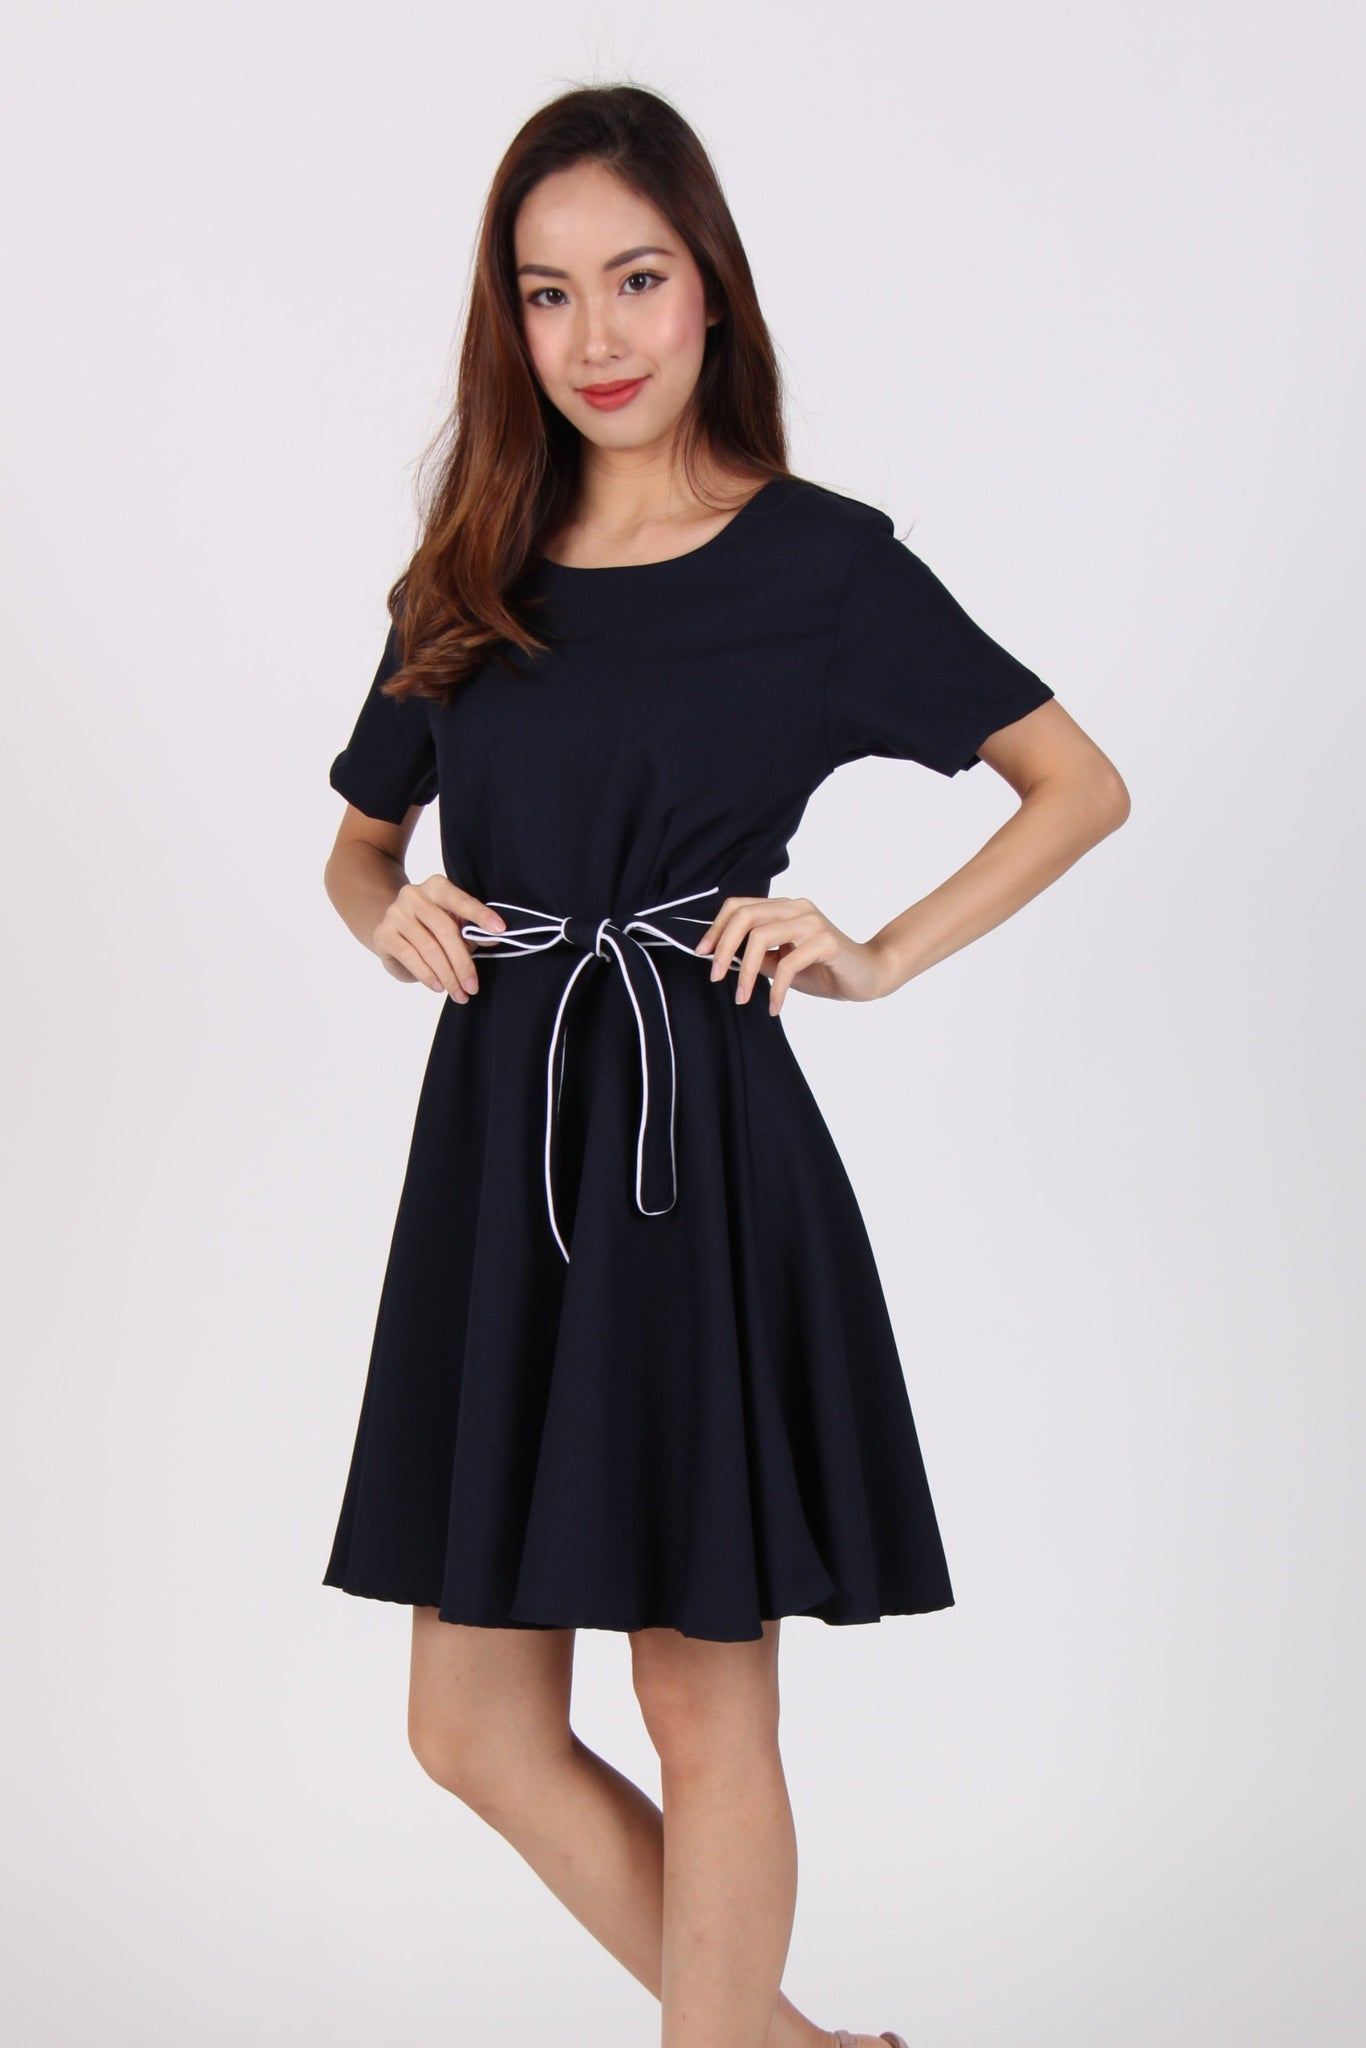 Sleeve Contrast Belt Skater Dress in Navy Blue